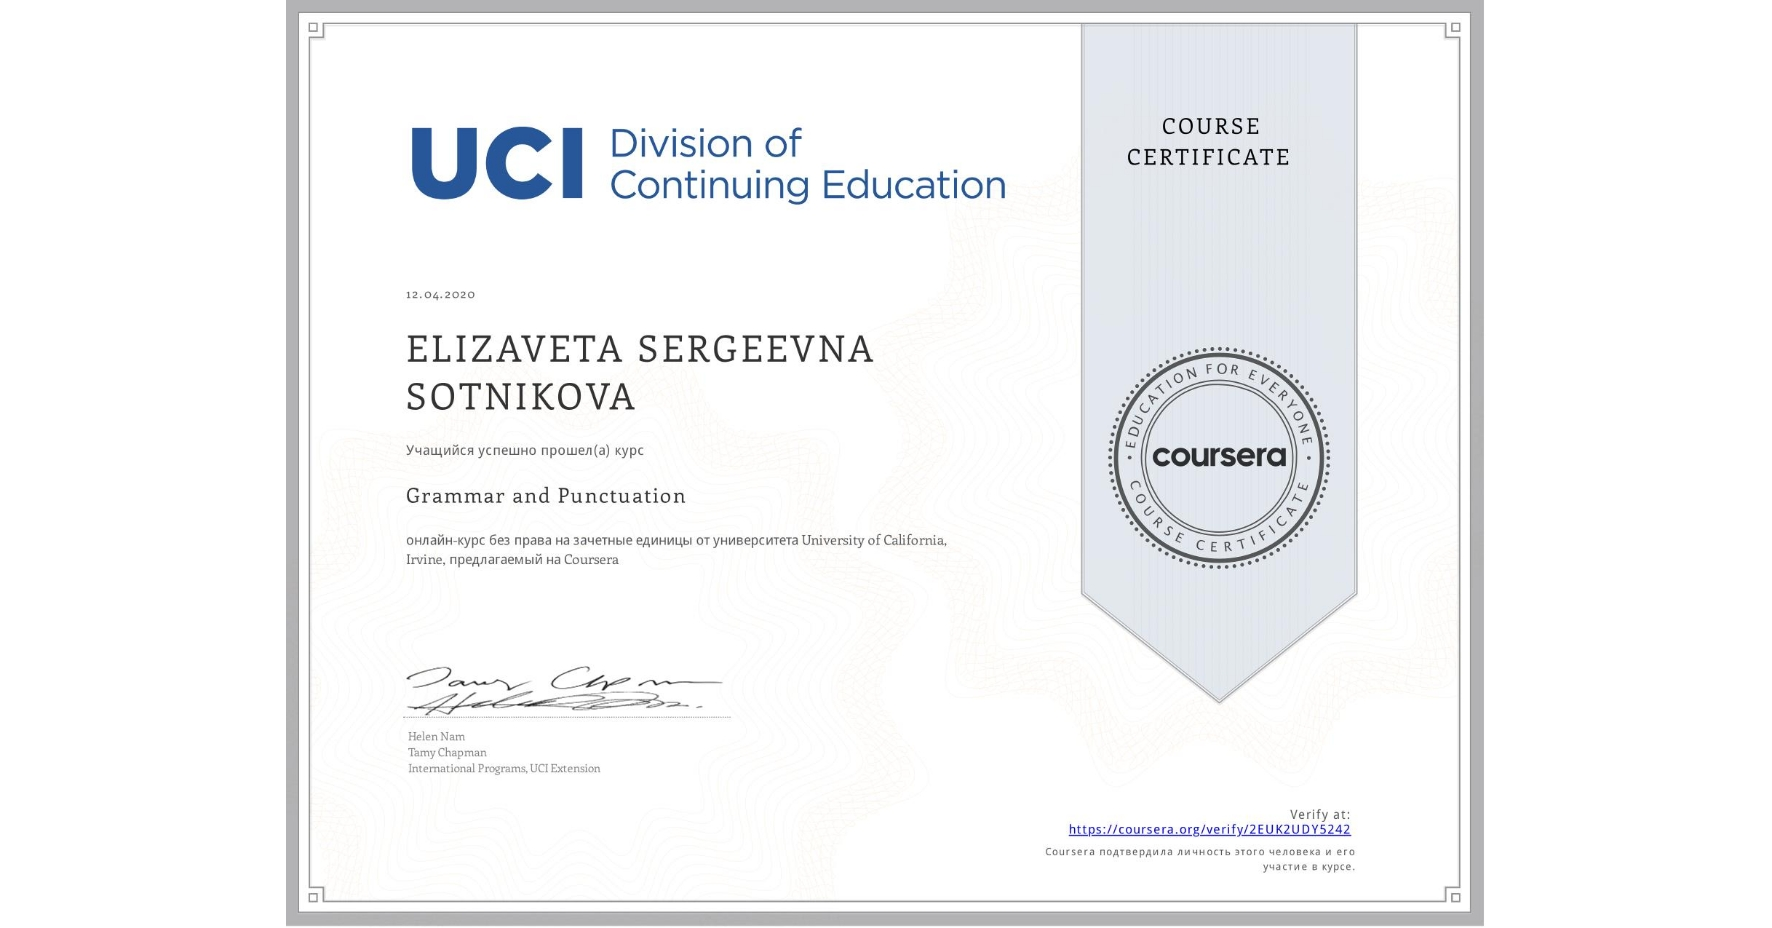 View certificate for ELIZAVETA SERGEEVNA  SOTNIKOVA, Grammar and Punctuation, an online non-credit course authorized by University of California, Irvine and offered through Coursera